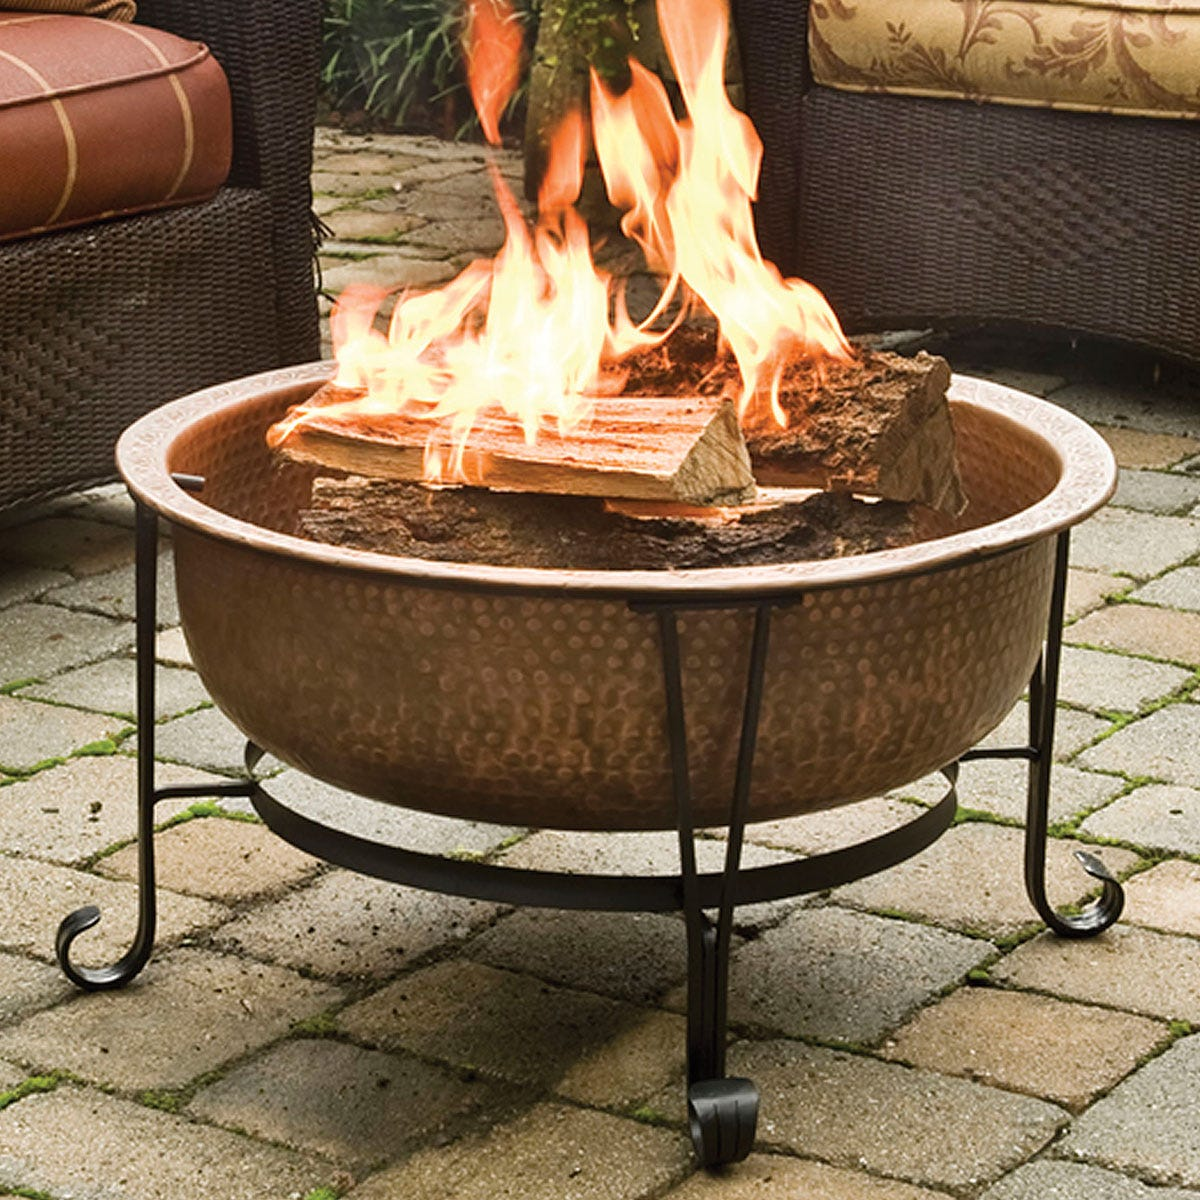 Hammered Copper Fire Pit From Sportys Preferred Living